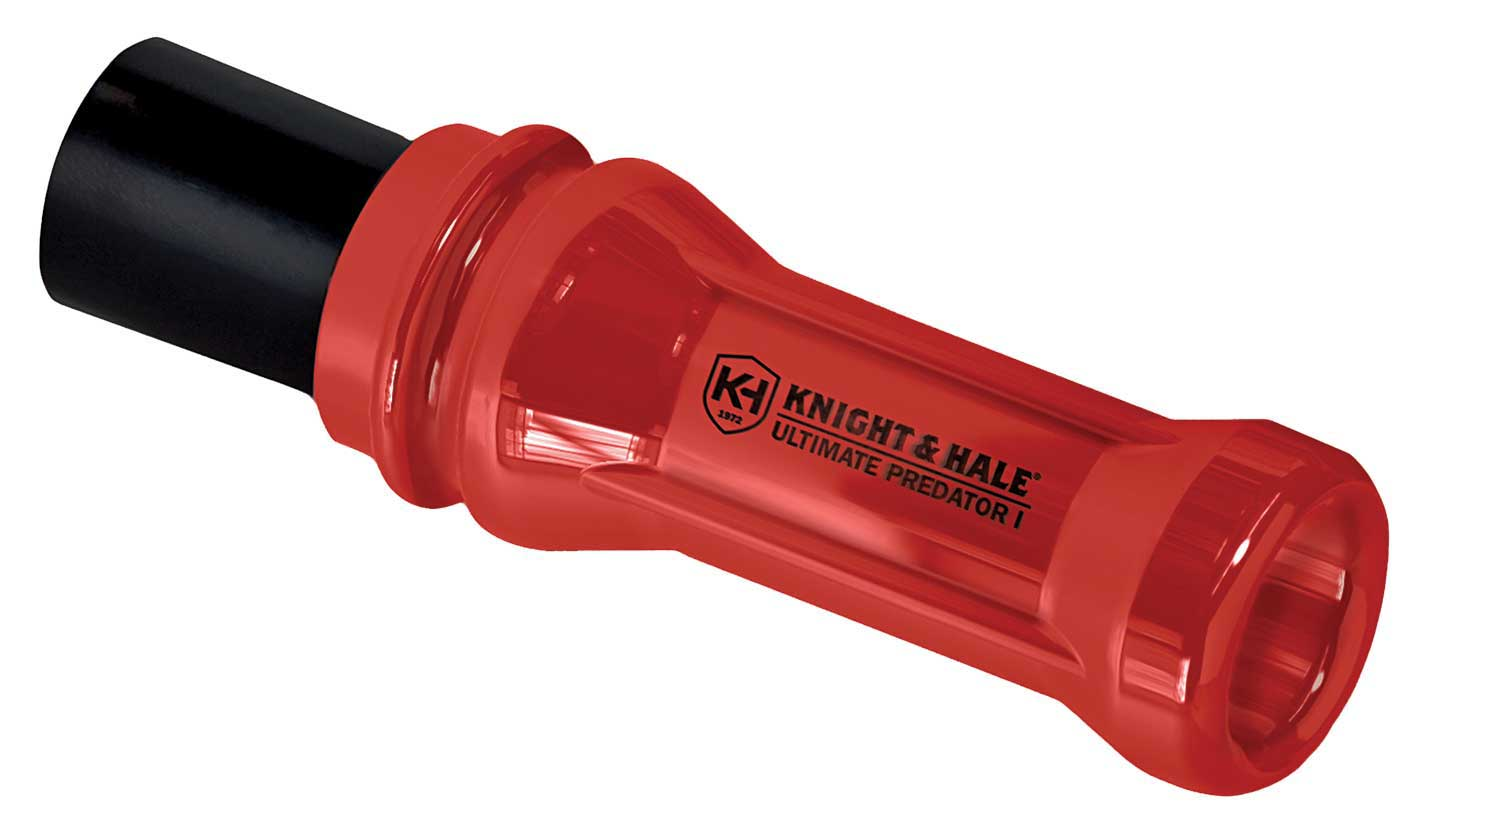 Knight & Hale Ultimate Predator Distress Call I